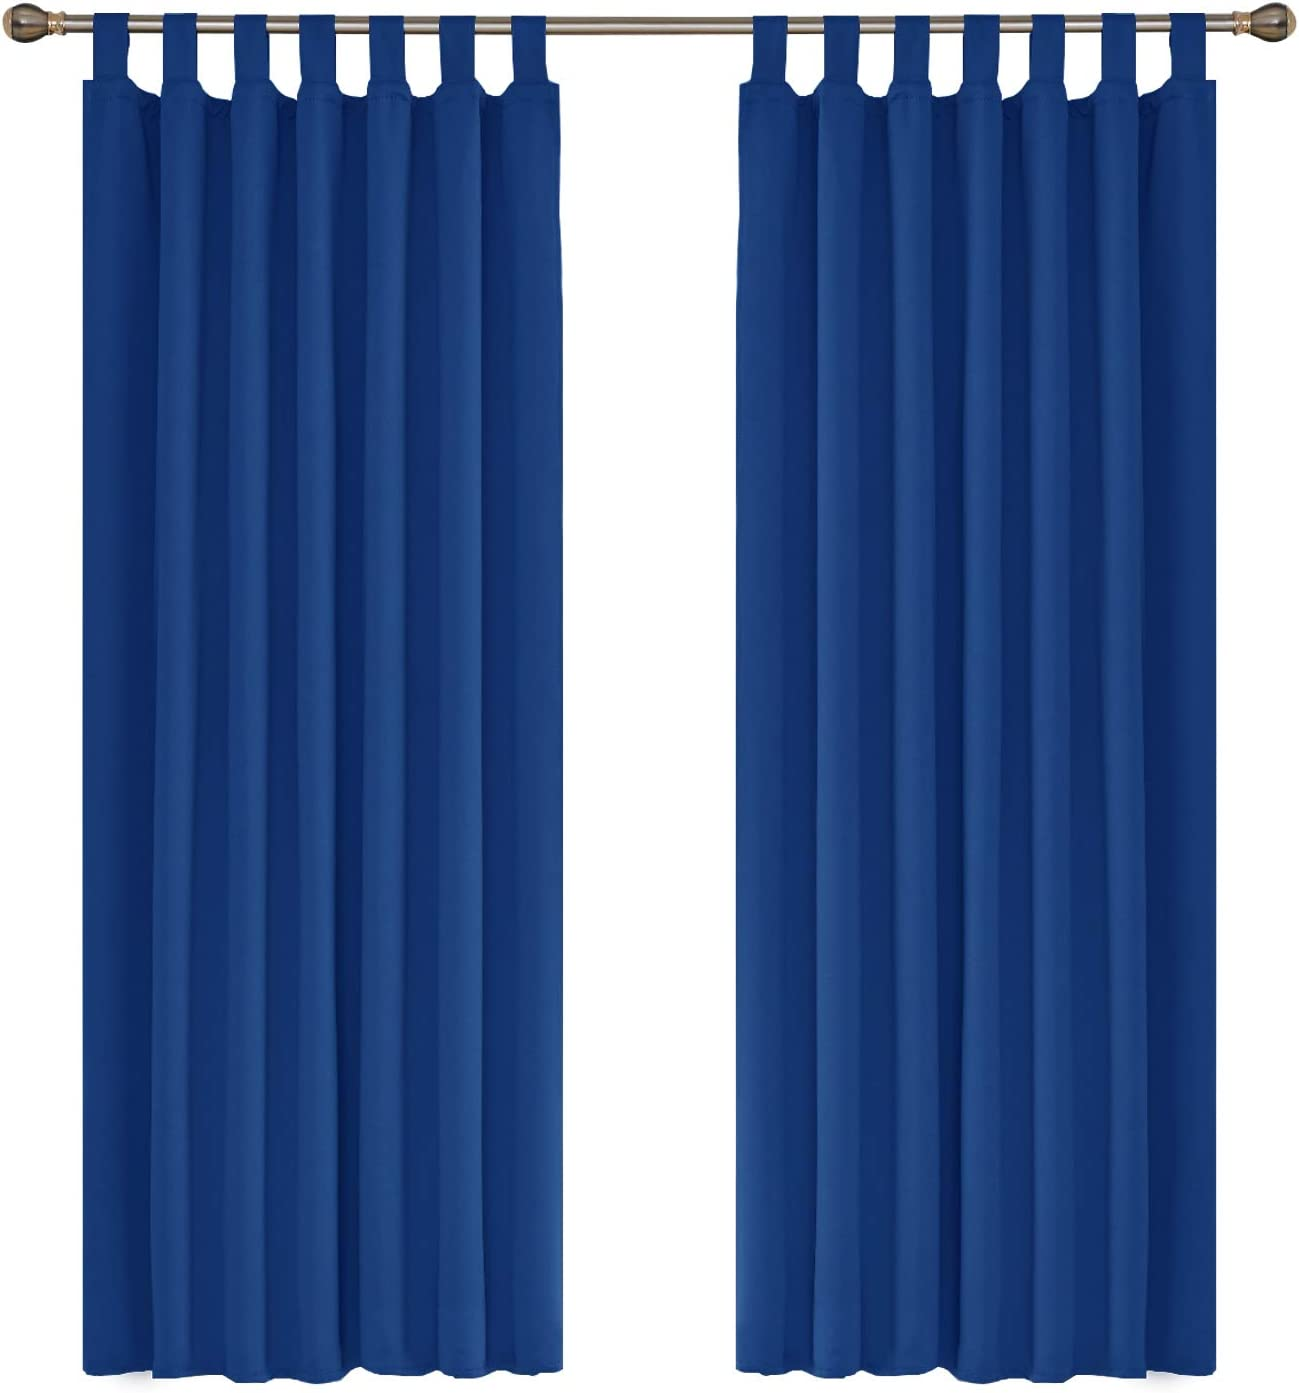 """Amazon Brand - Umi Curtains Thermal Insulated Tab Top Blackout Curtains for Livingroom 55 x 70 Inch Royal Blue Two Panels 2 Panels 55""""x69"""" Blue"""